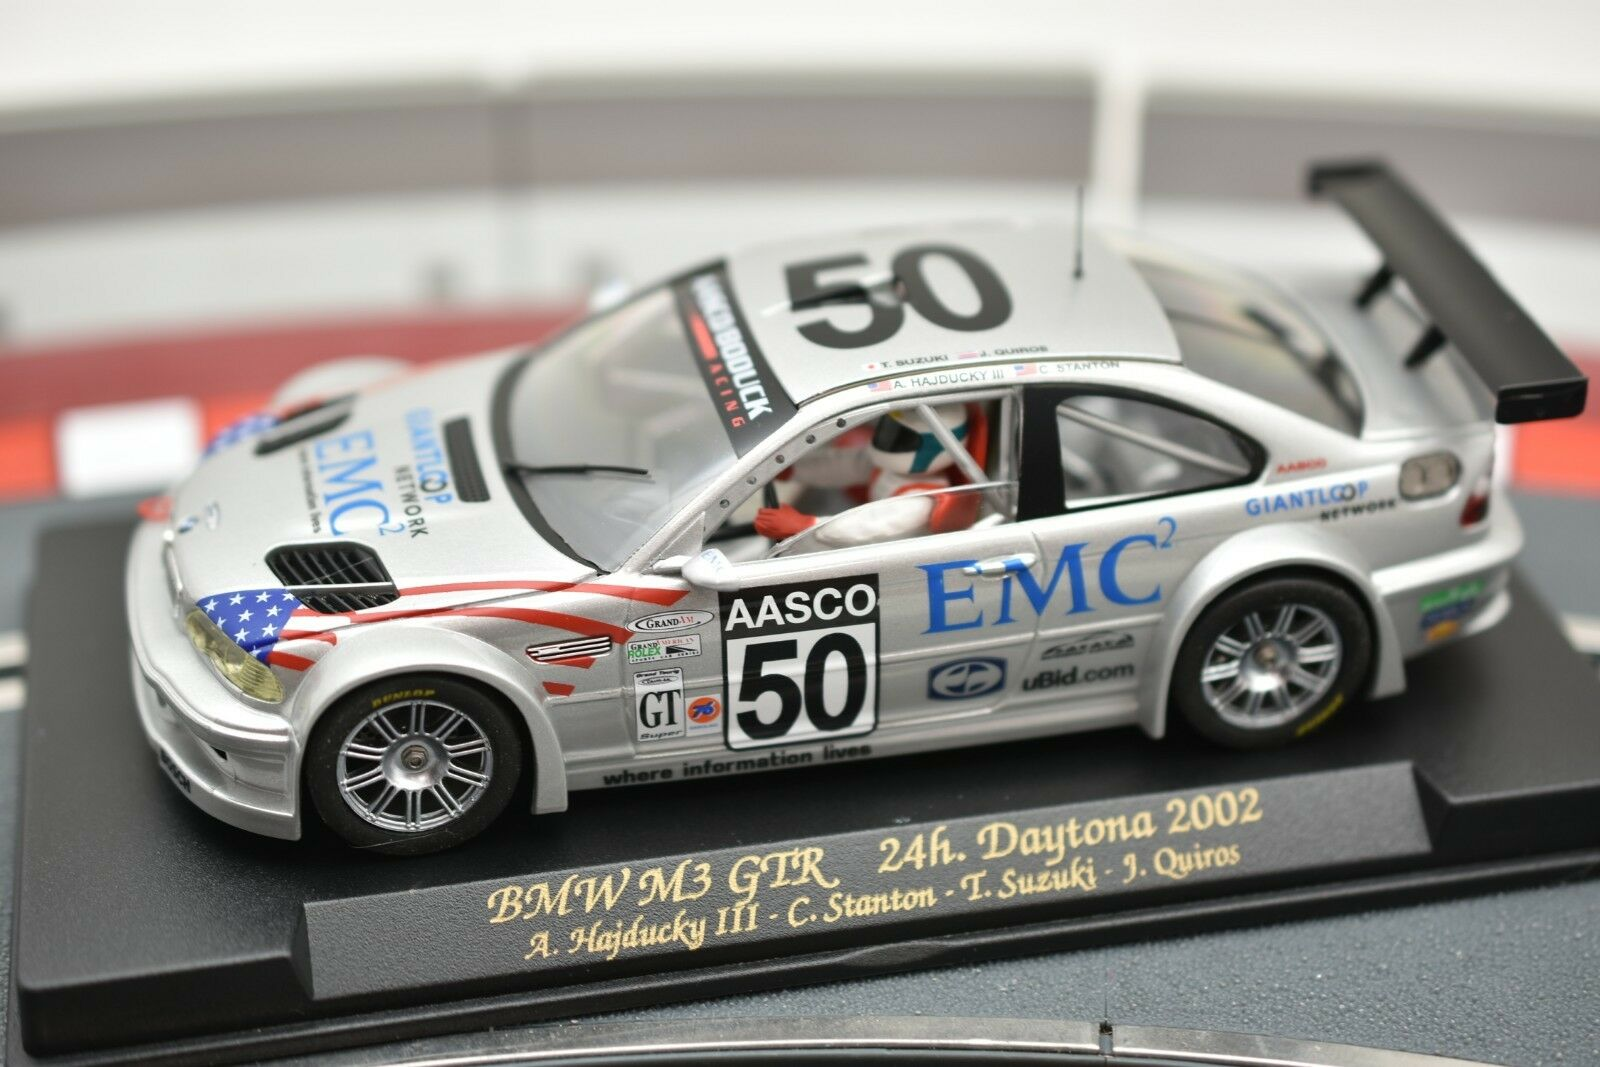 88009 FLY CAR MODEL 1 32 SLOT BMW M3 GTR 24H DAYTONA 2002 A-285